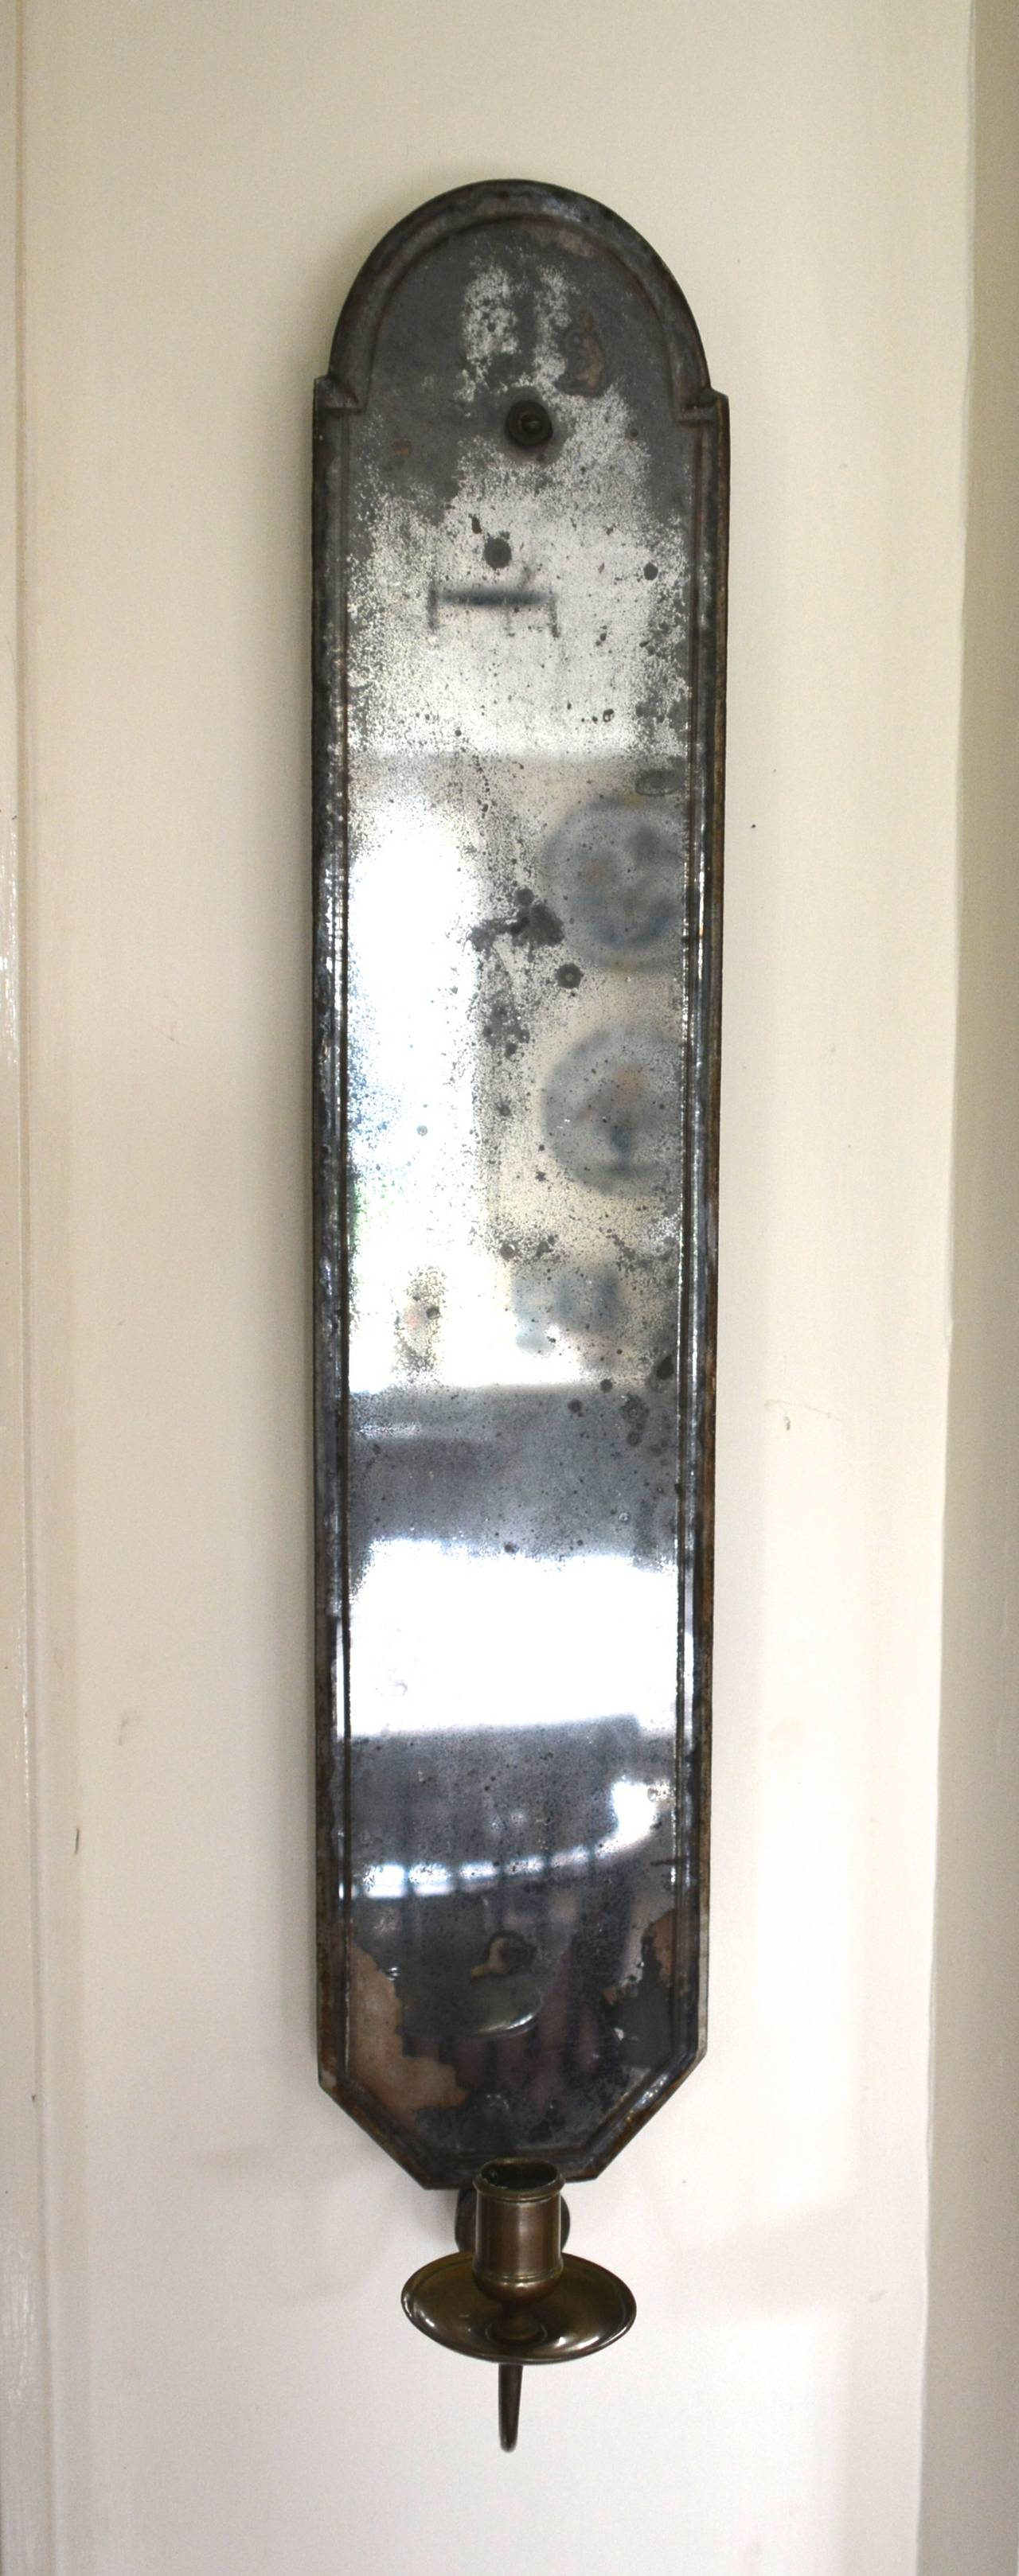 Rare Early 18th Century Mirrored Wall Sconce At 1stdibs